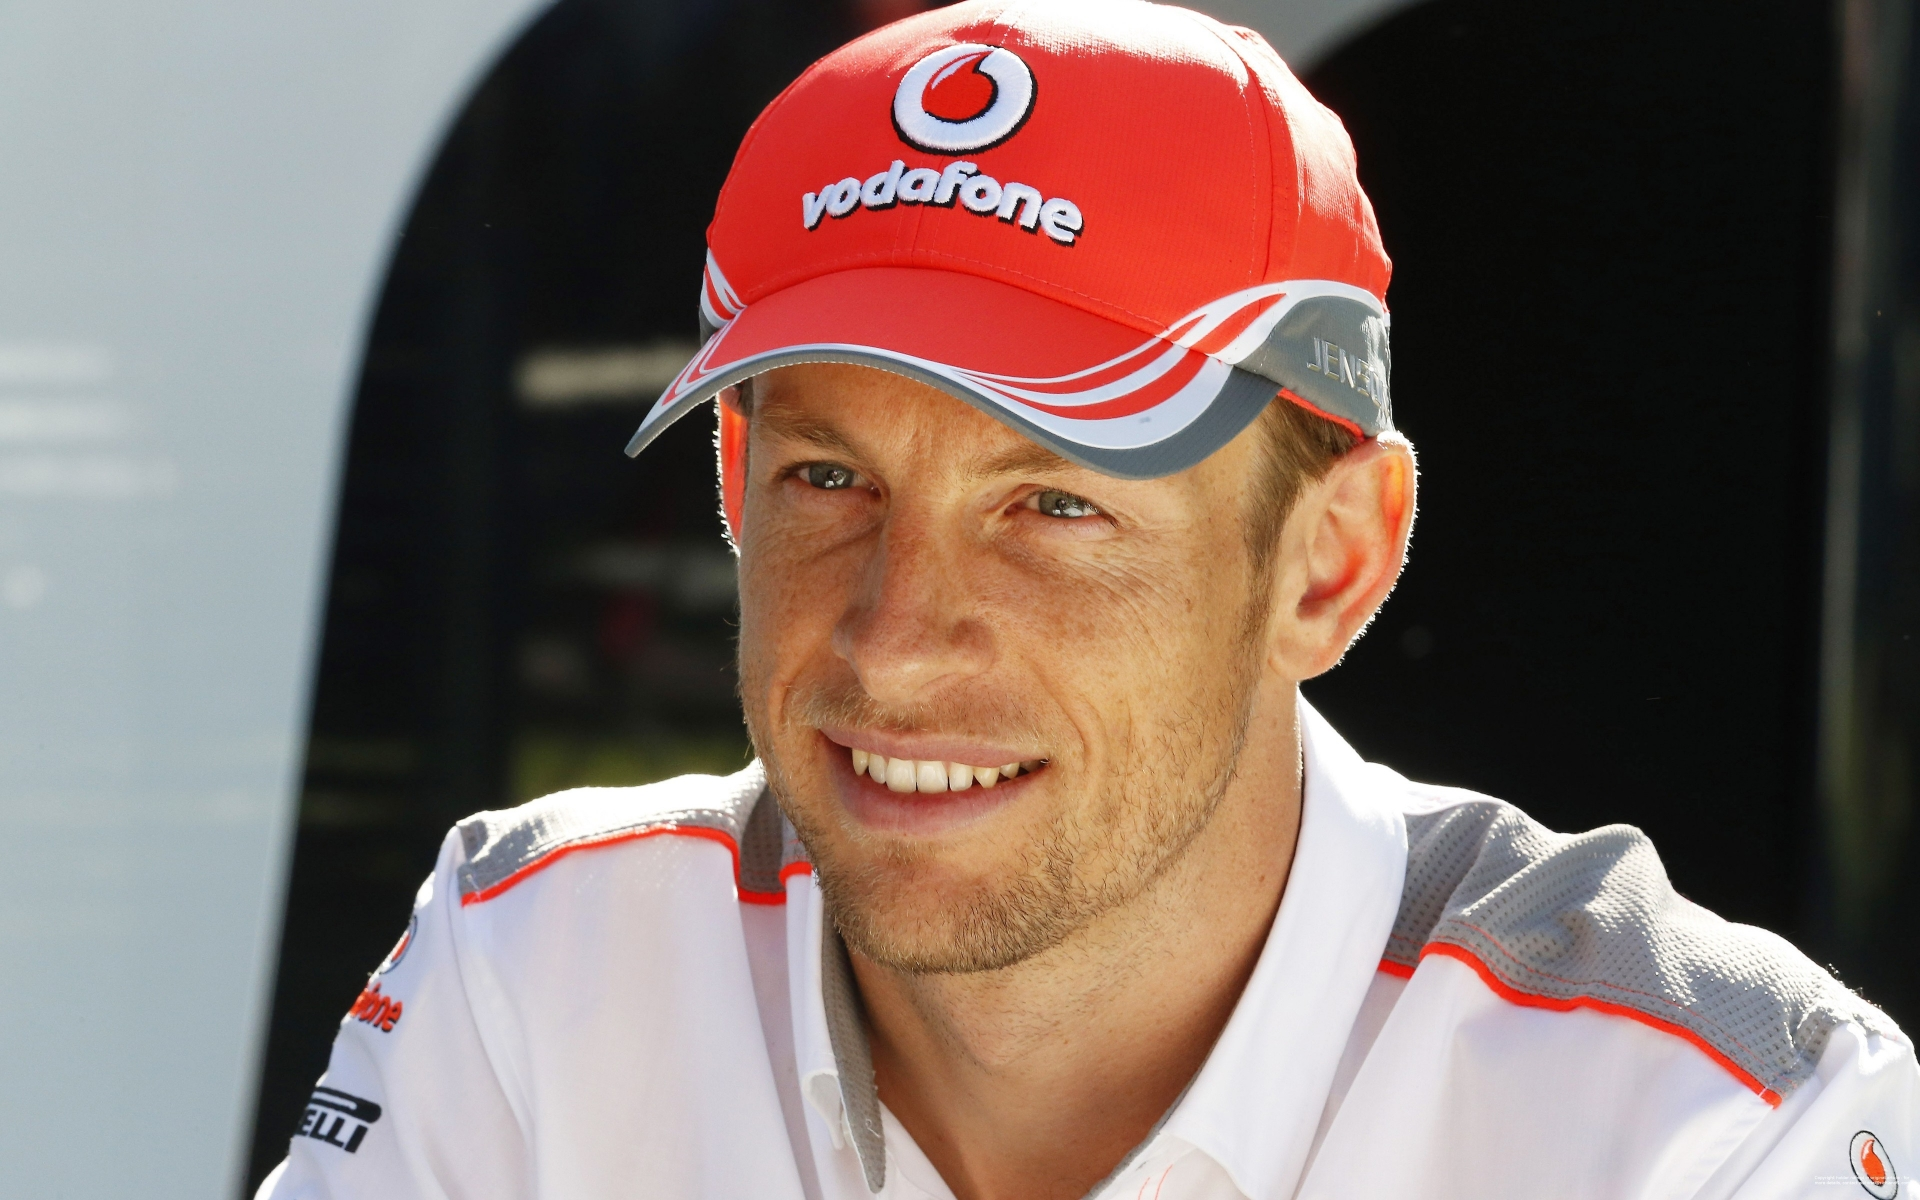 Jenson Button Vodafone for 1920 x 1200 widescreen resolution